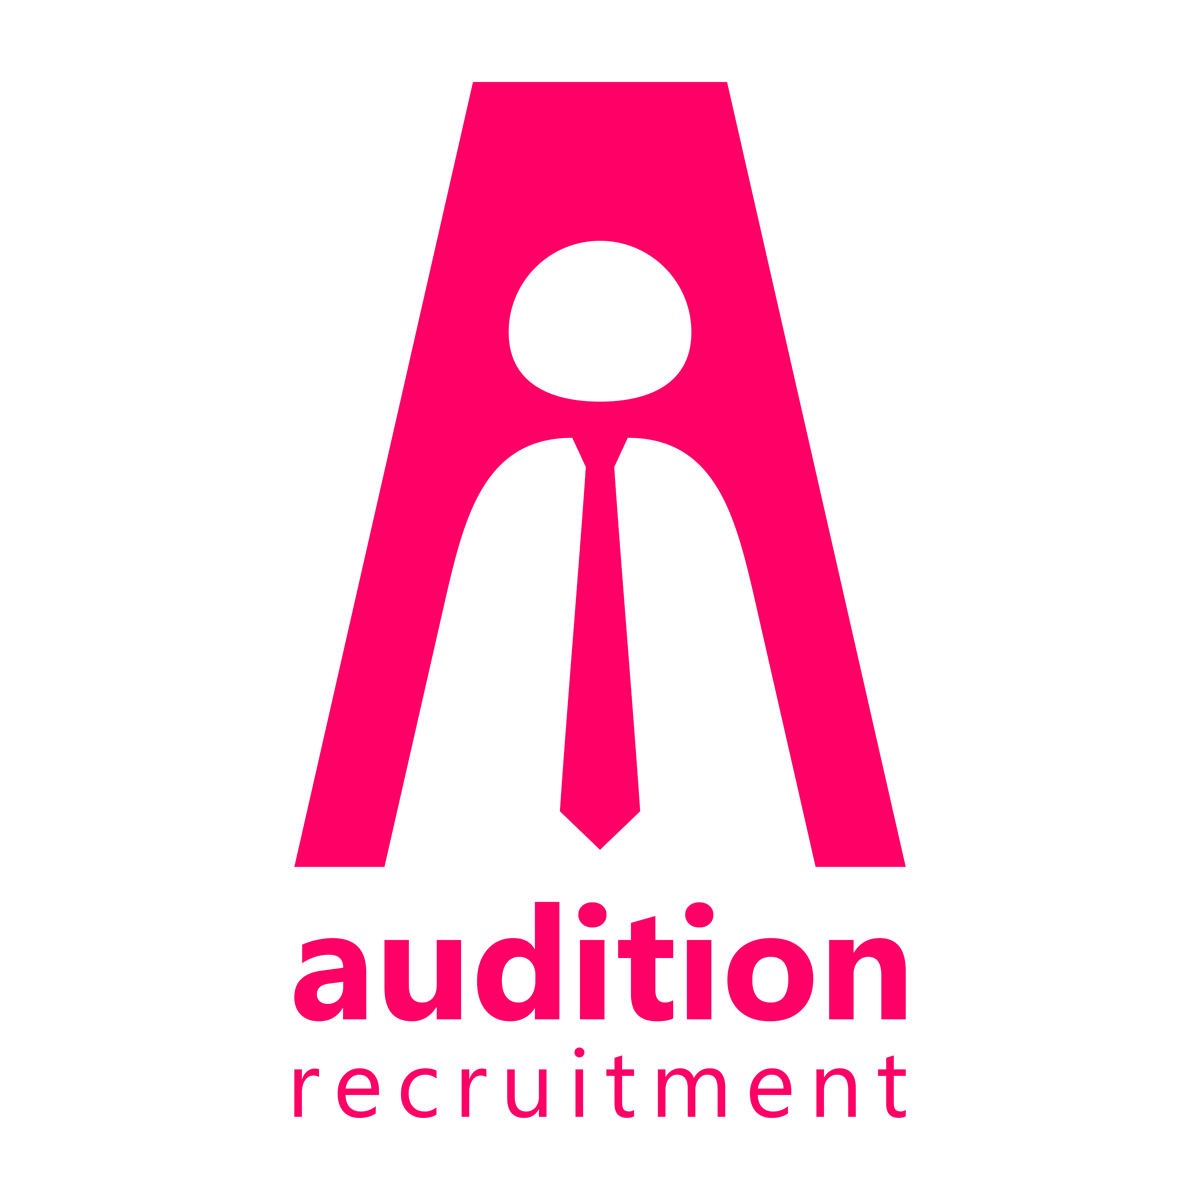 Audition Recruitment Logo - logo design by PixelDuck